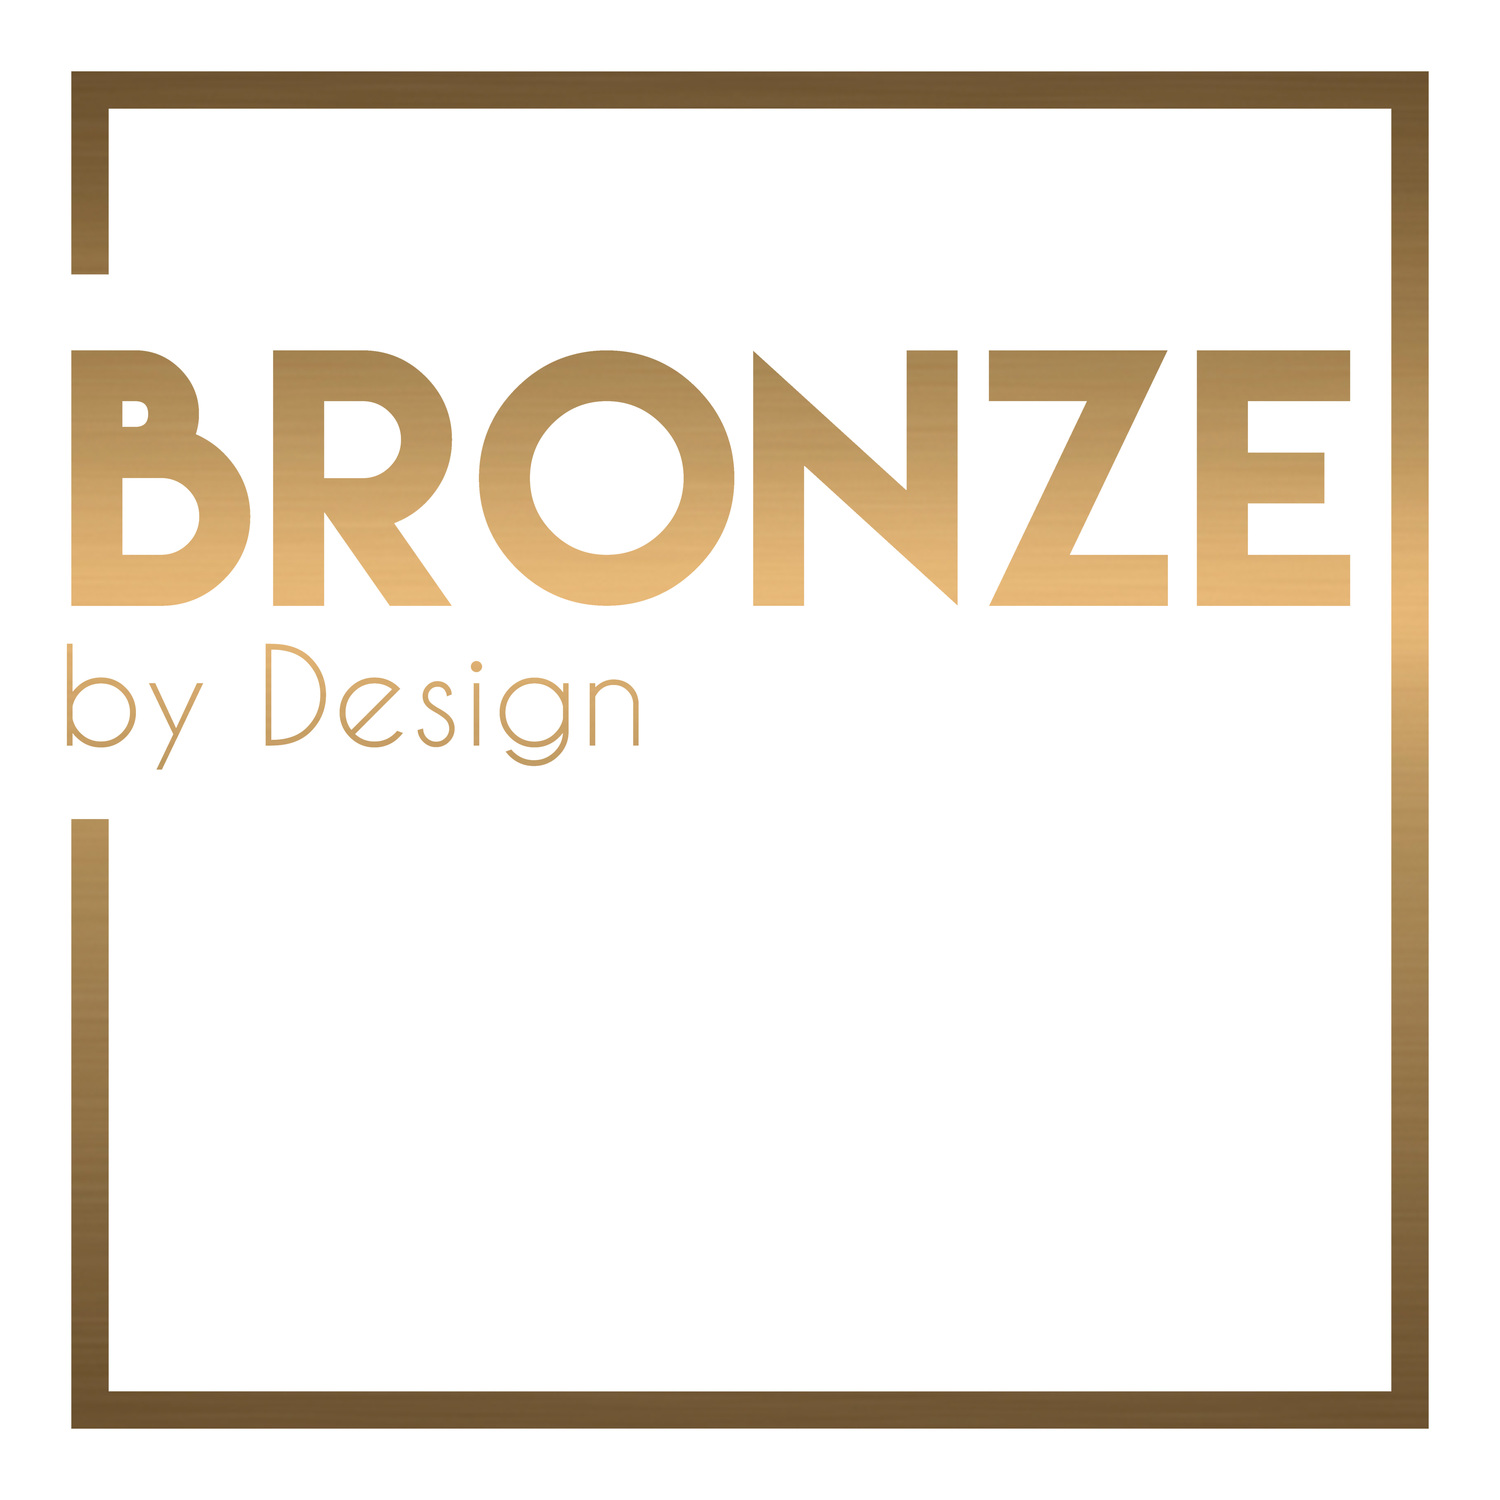 Bronze by Design